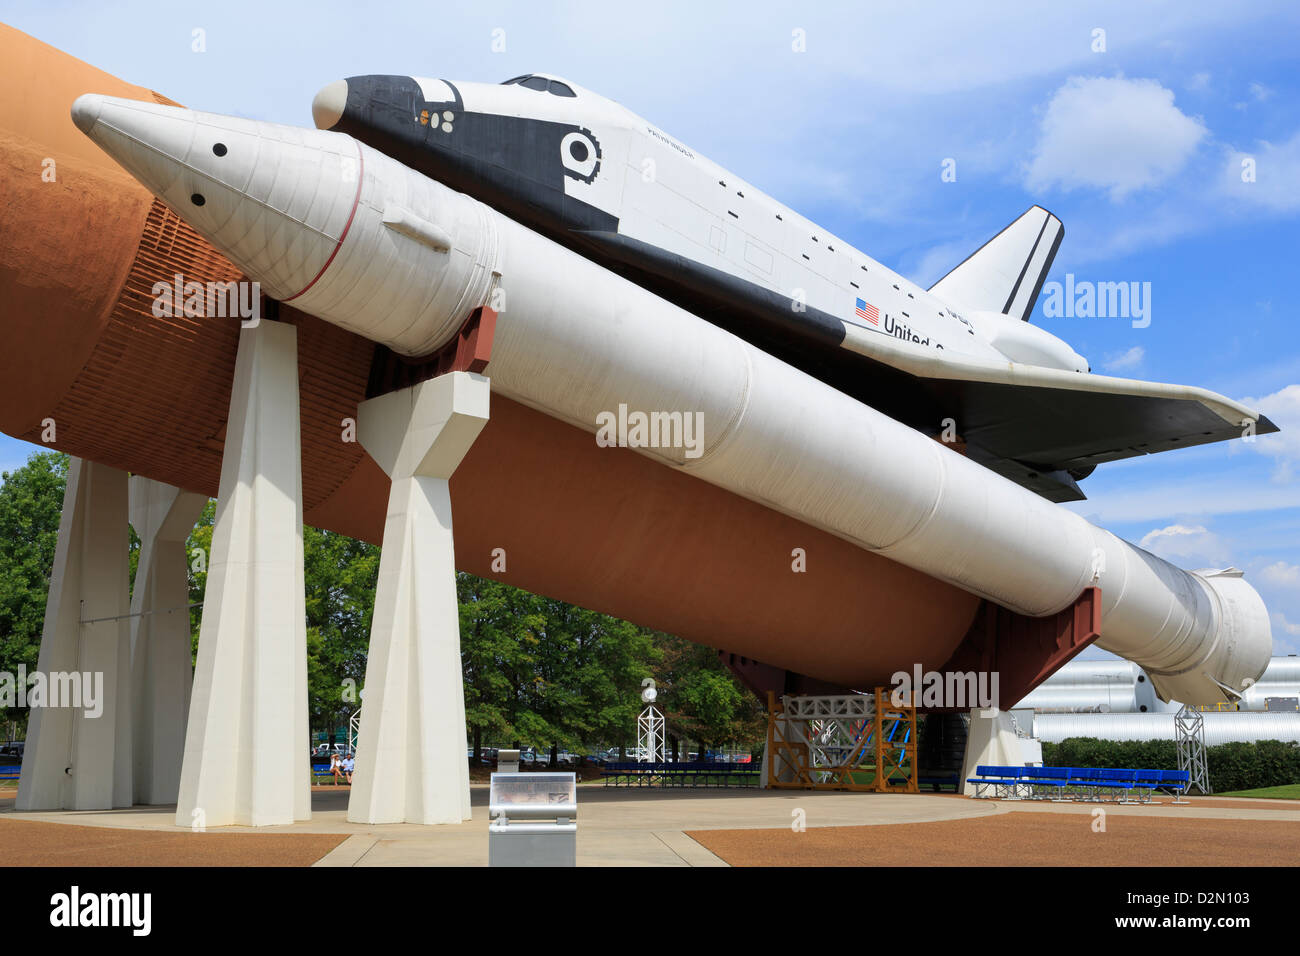 Space Shuttle at the United States Space and Rocket Center, Huntsville, Alabama, United States of America, North - Stock Image